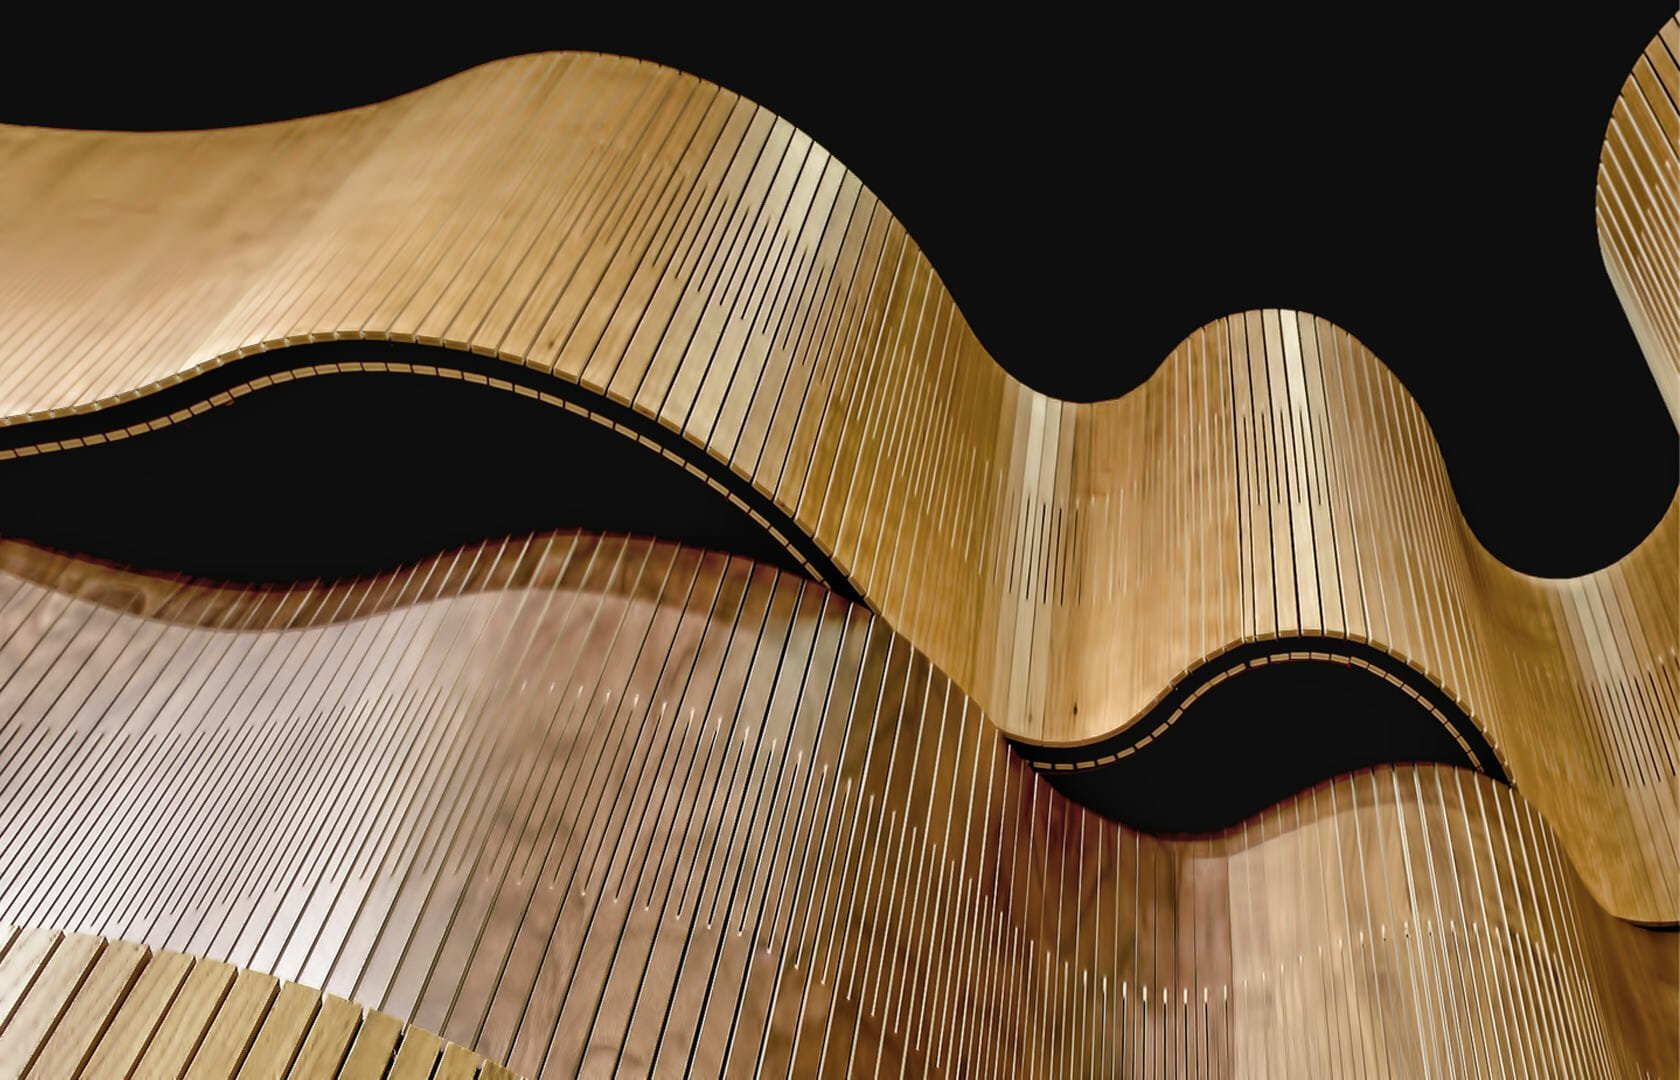 acoustic wood undulating like wave in showroom